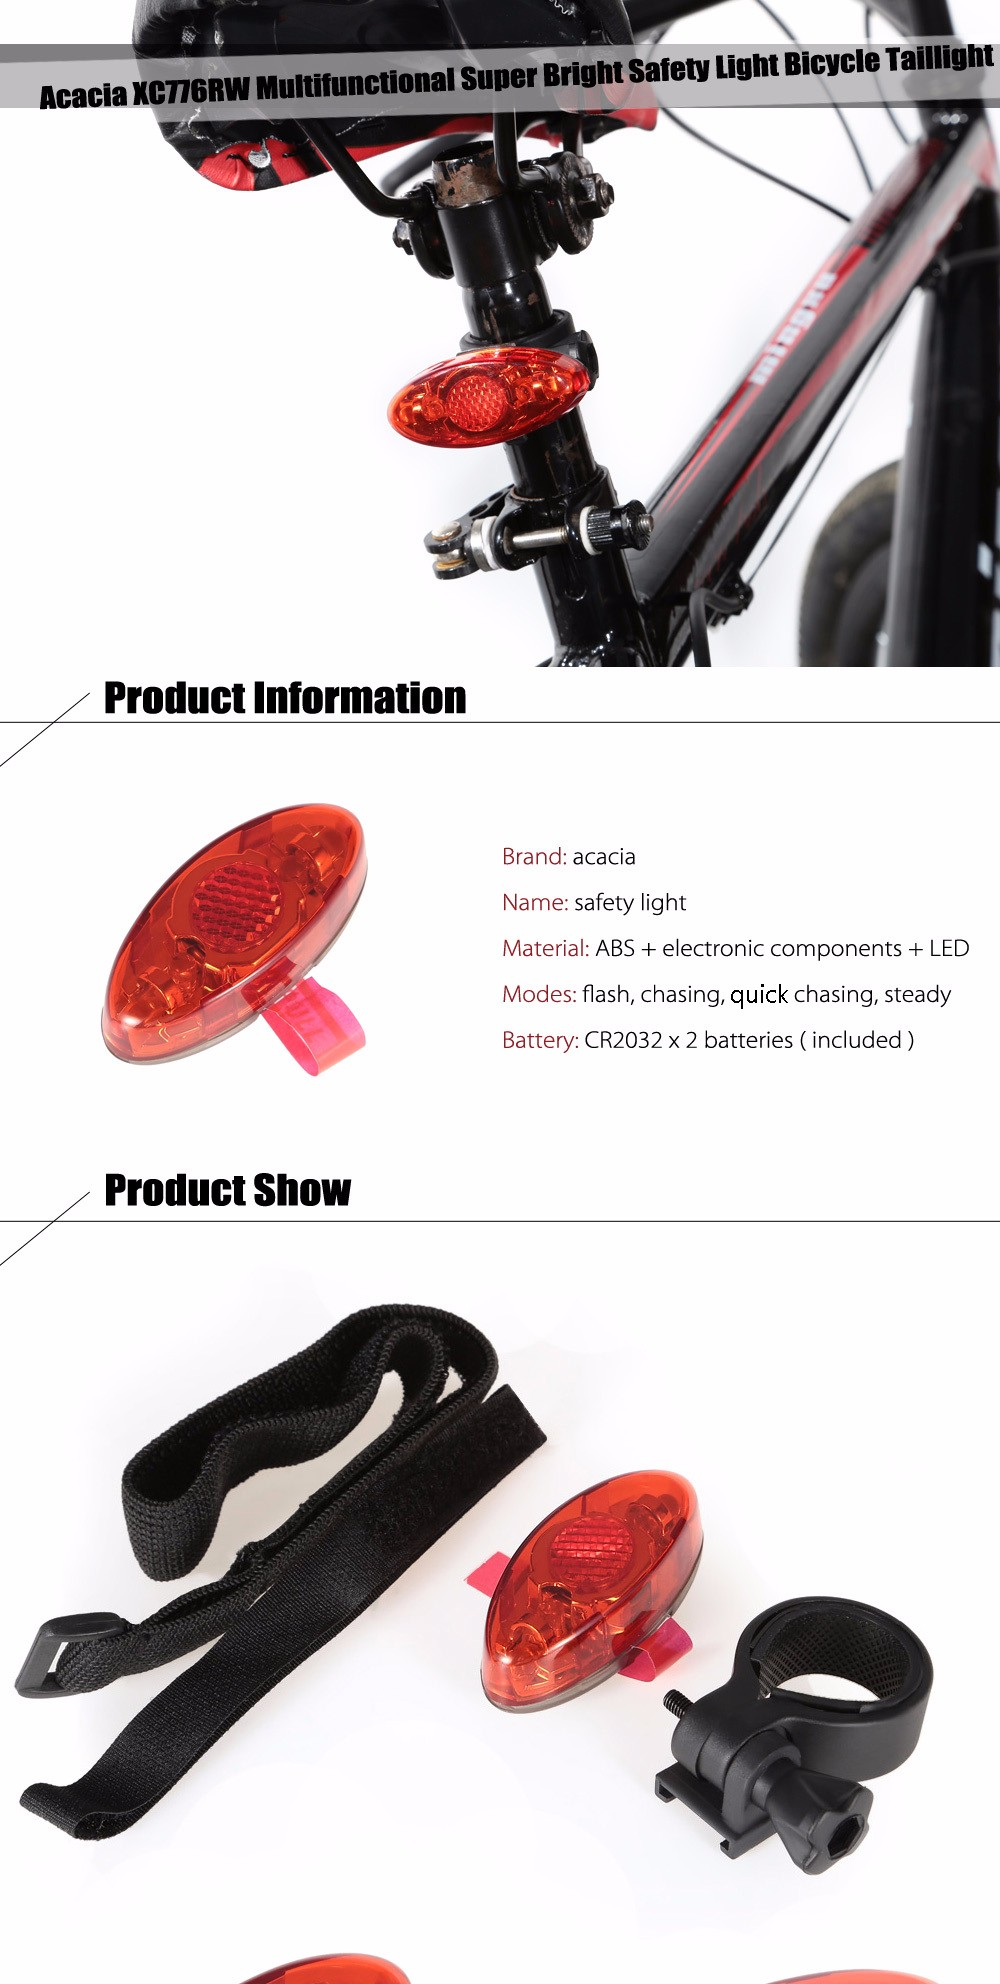 Acacia XC776RW Multifunctional Super Bright Safety Light Bicycle Taillight